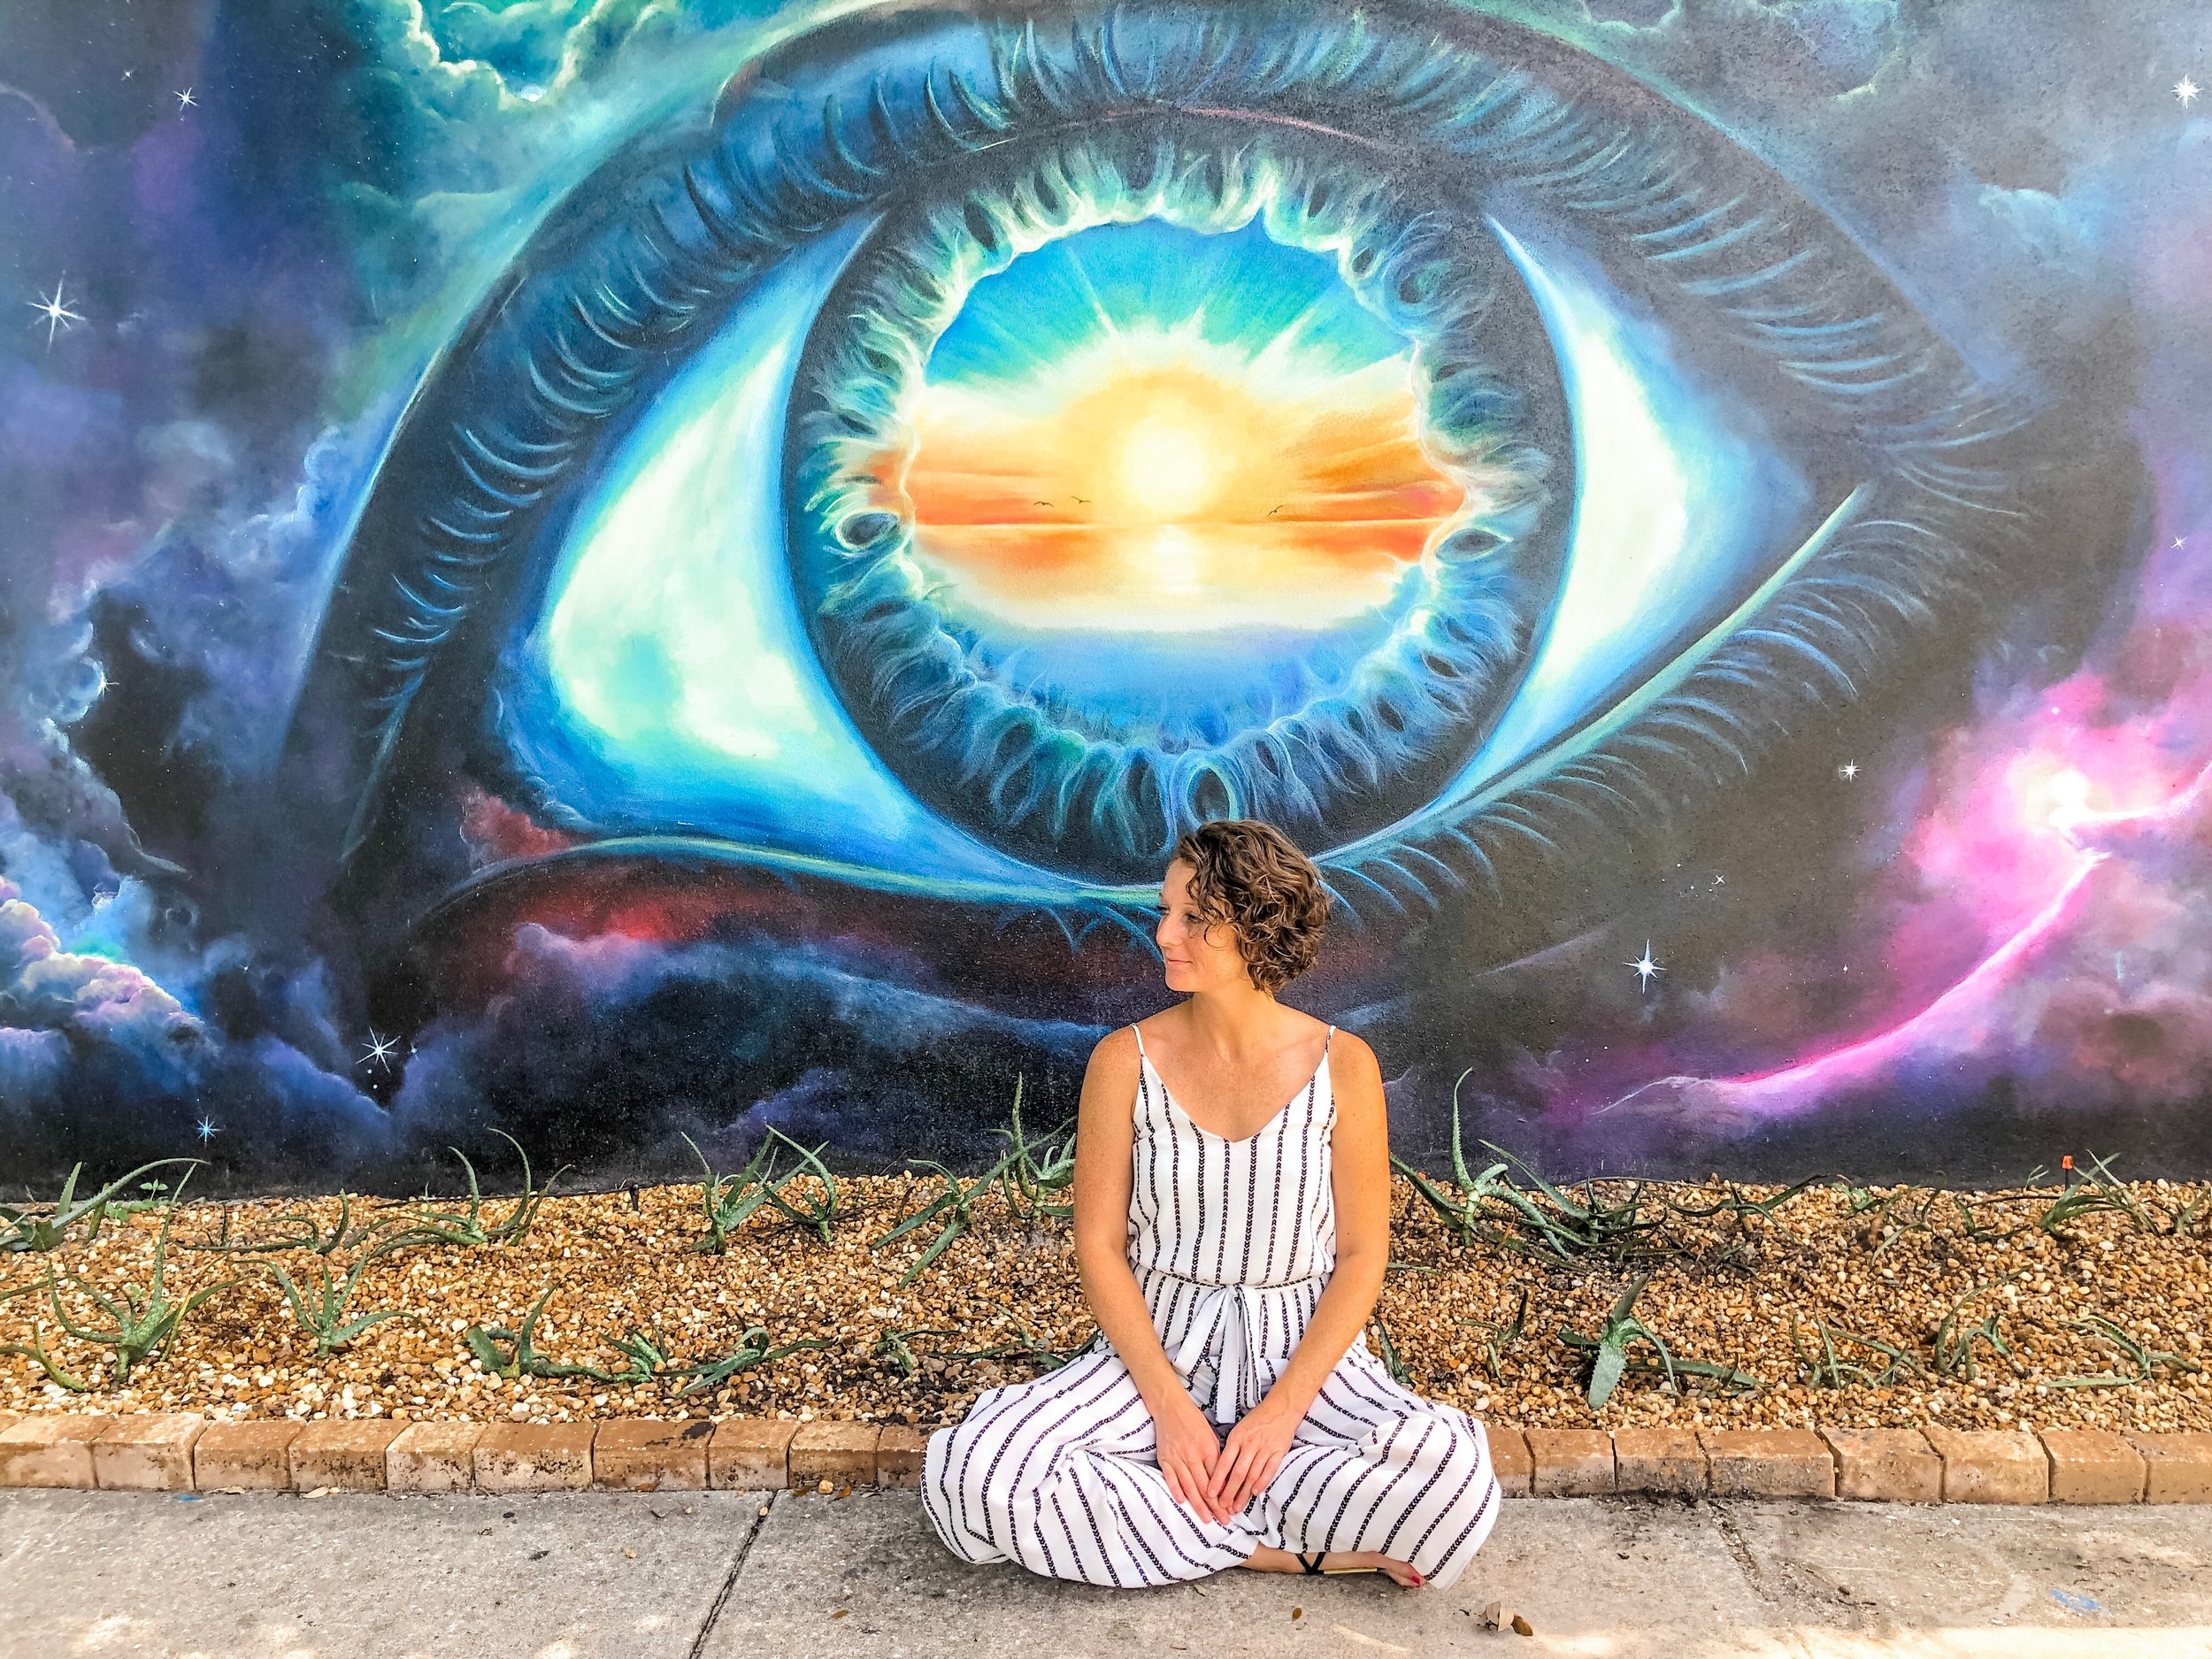 Nella Fusco  Nella owns Awaken Kombucha, based out of Vero Beach, FL. Awaken is the only company in the state of Florida that ferments in oak barrels. We try to source and support as many local farmers to flavor our kombucha.